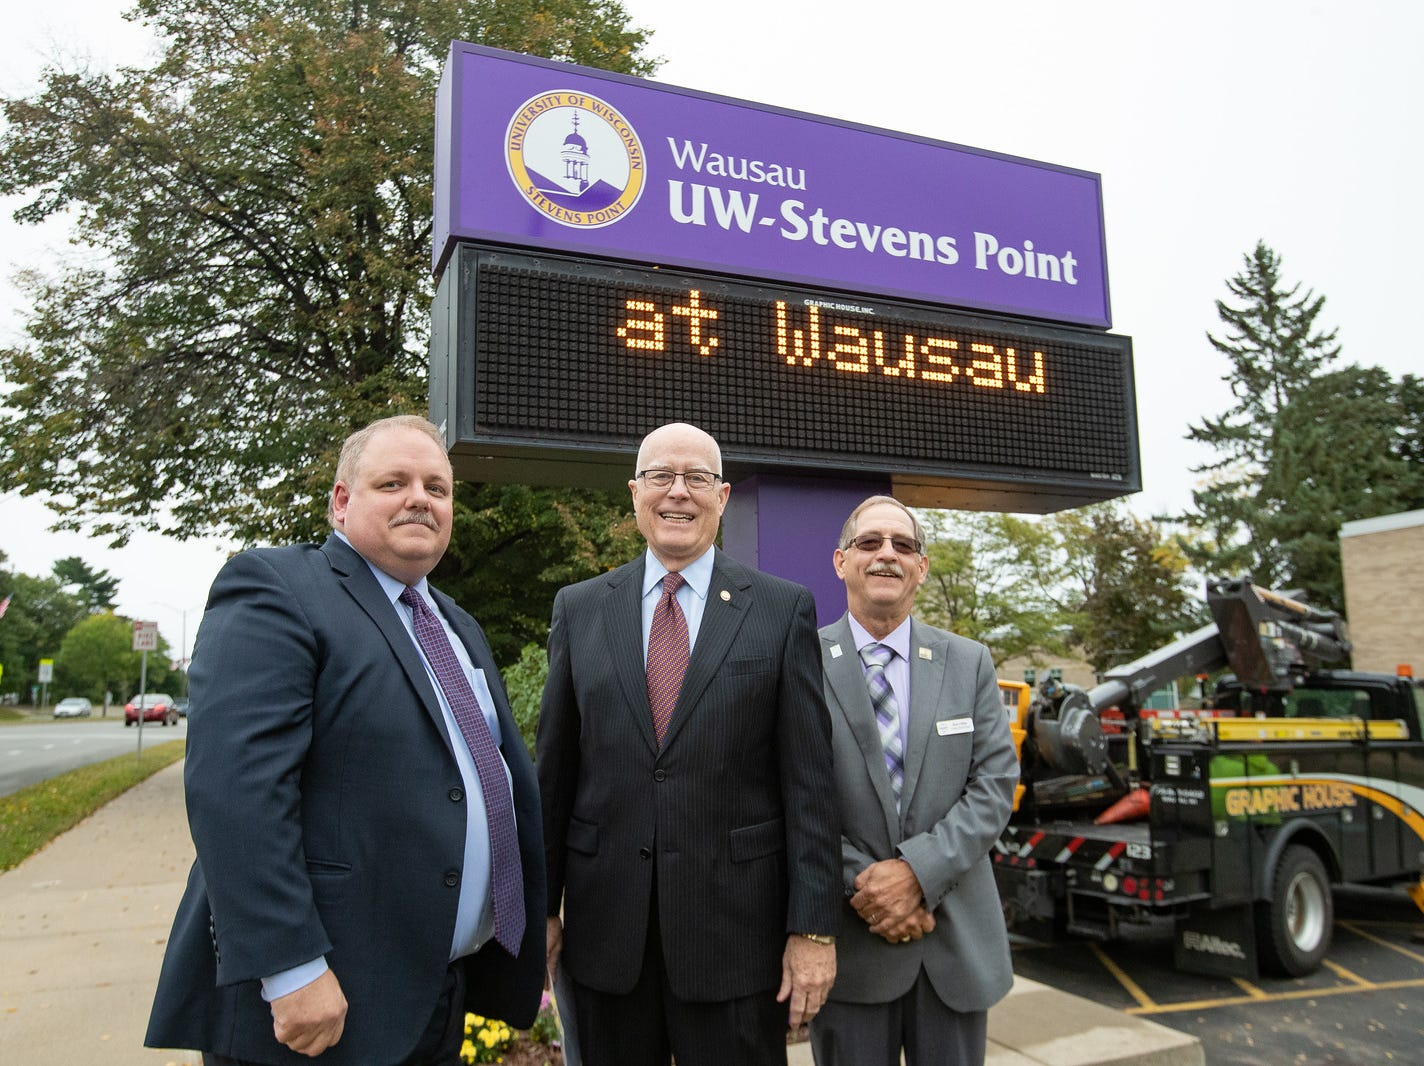 UW-Stevens Point Chancellor Bernie Patterson, Wausau Mayor Robert Mielke and Marathon County Board Chairman Kurt Gibbs pose with the new UW-Stevens Point at Wausau sign.